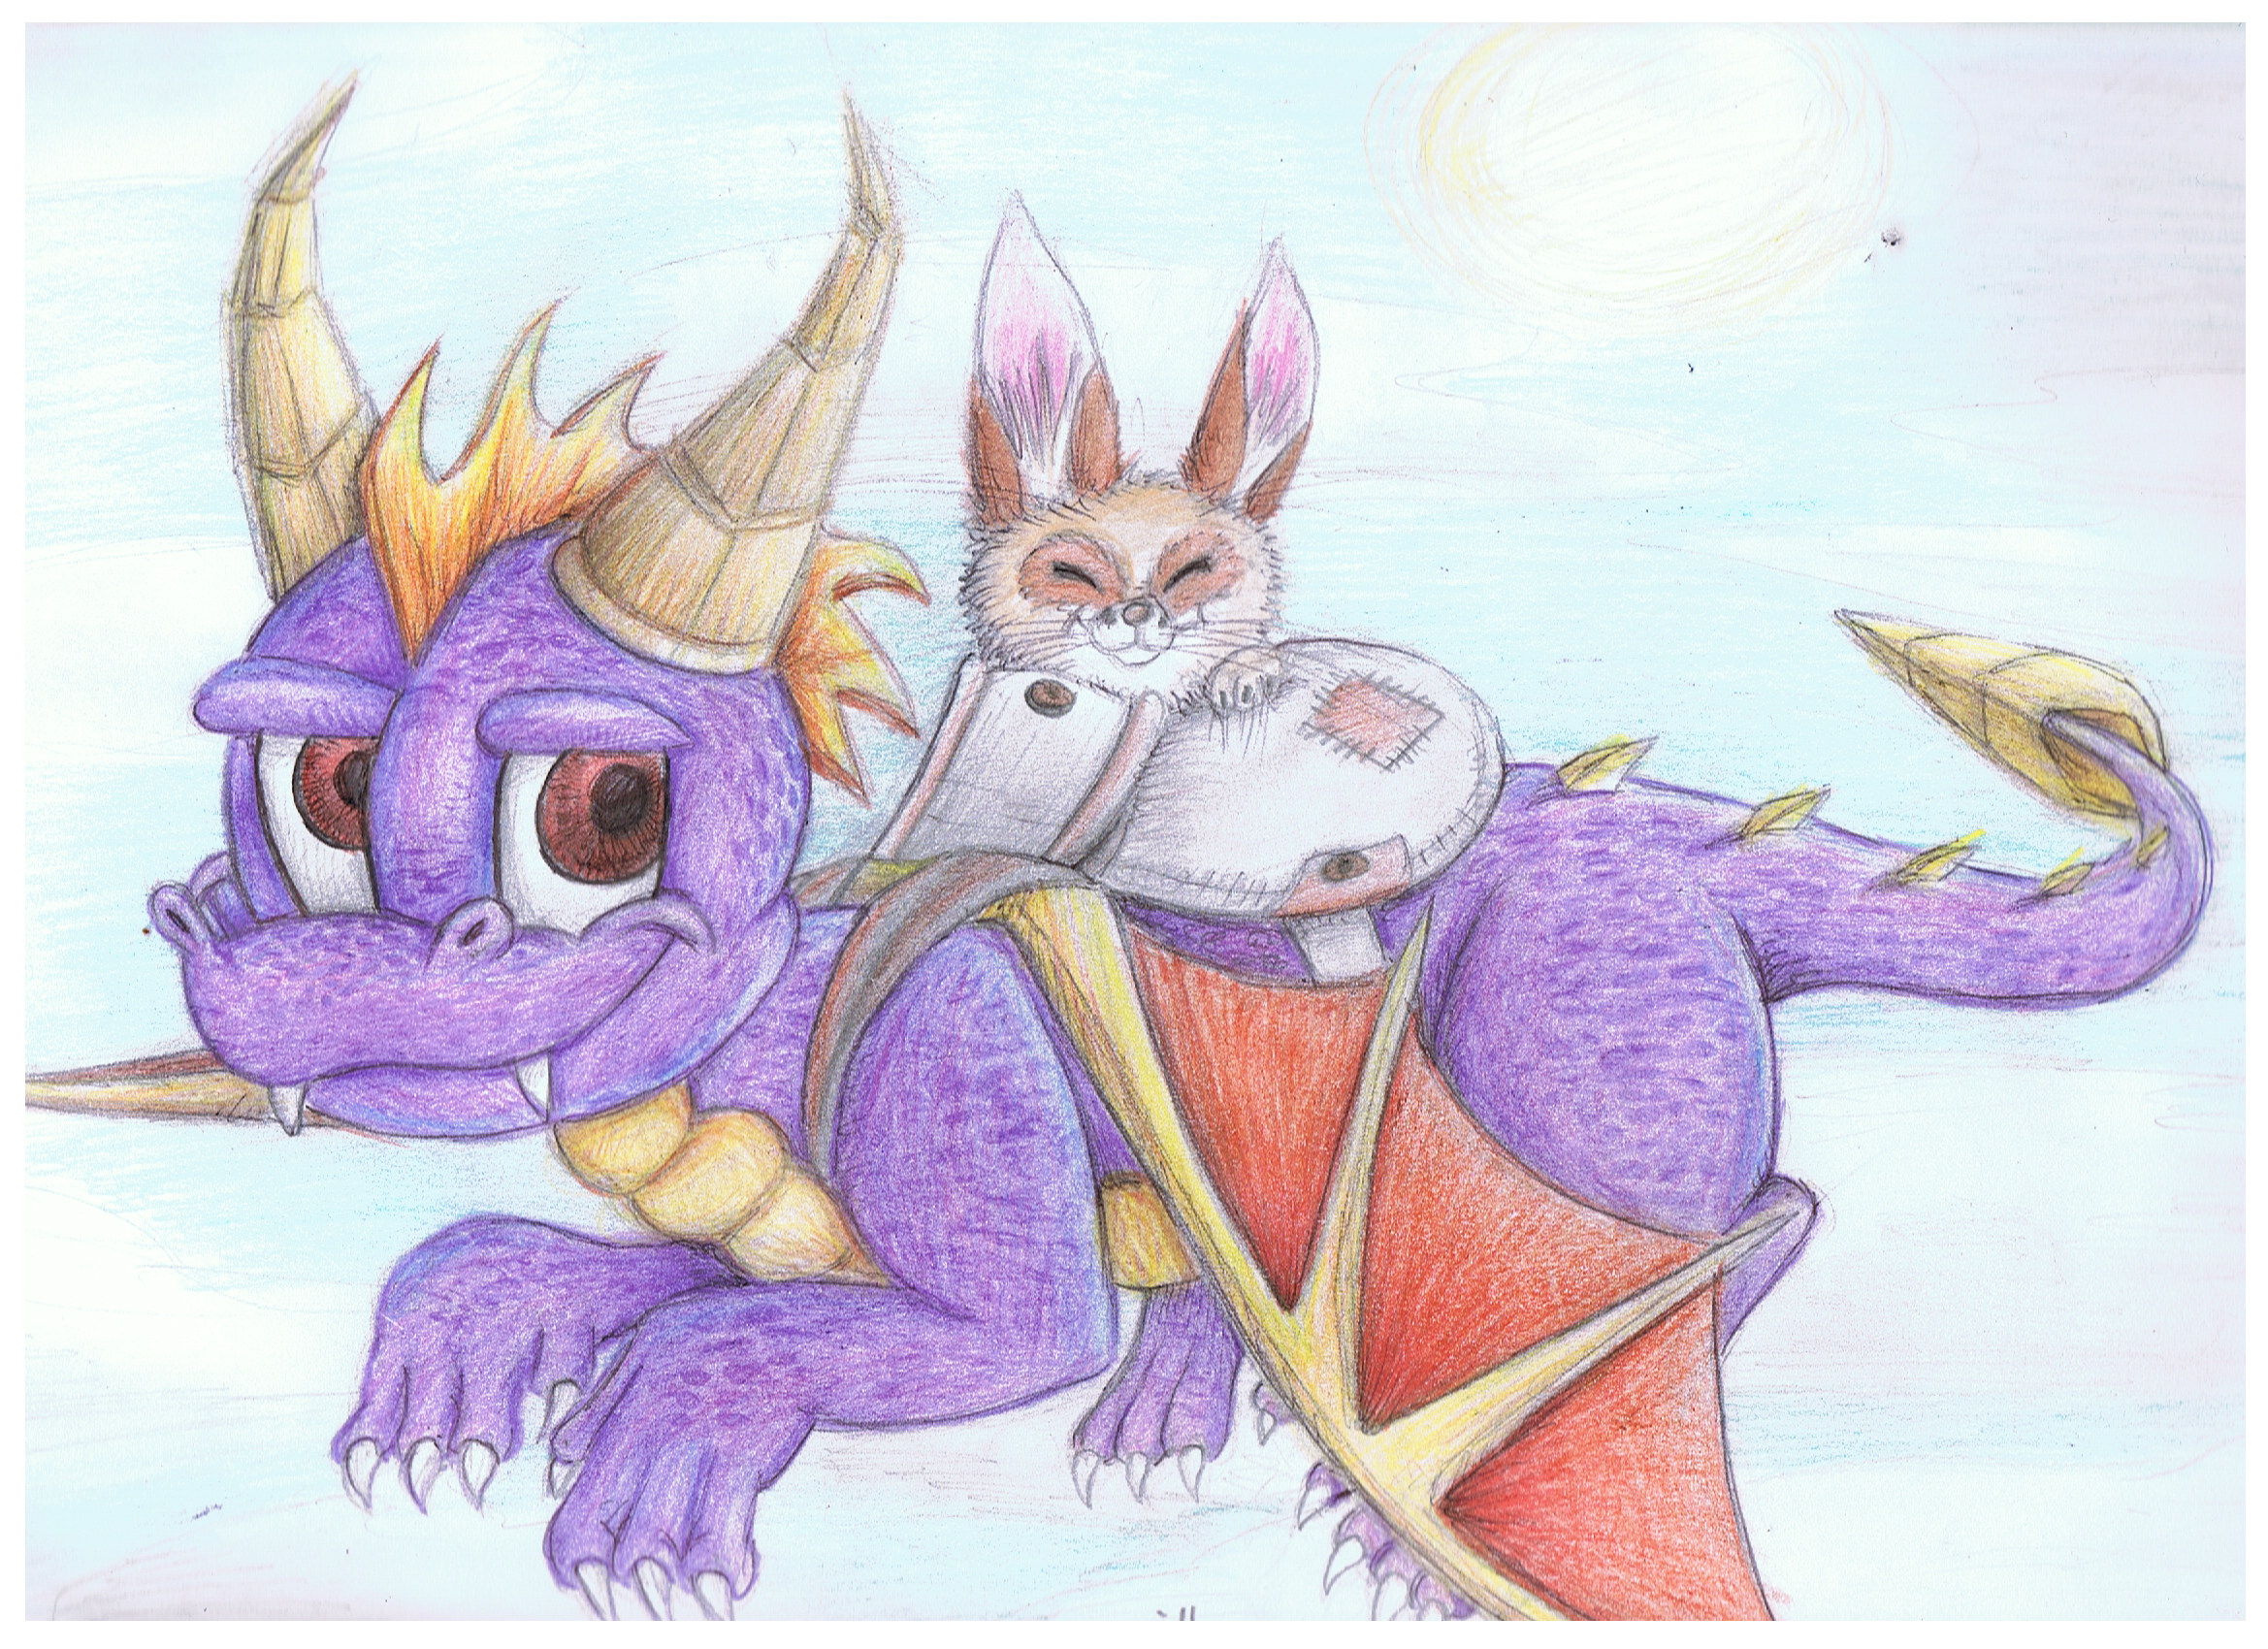 Spyro and Hachi doodle by ConkerTSquirrel